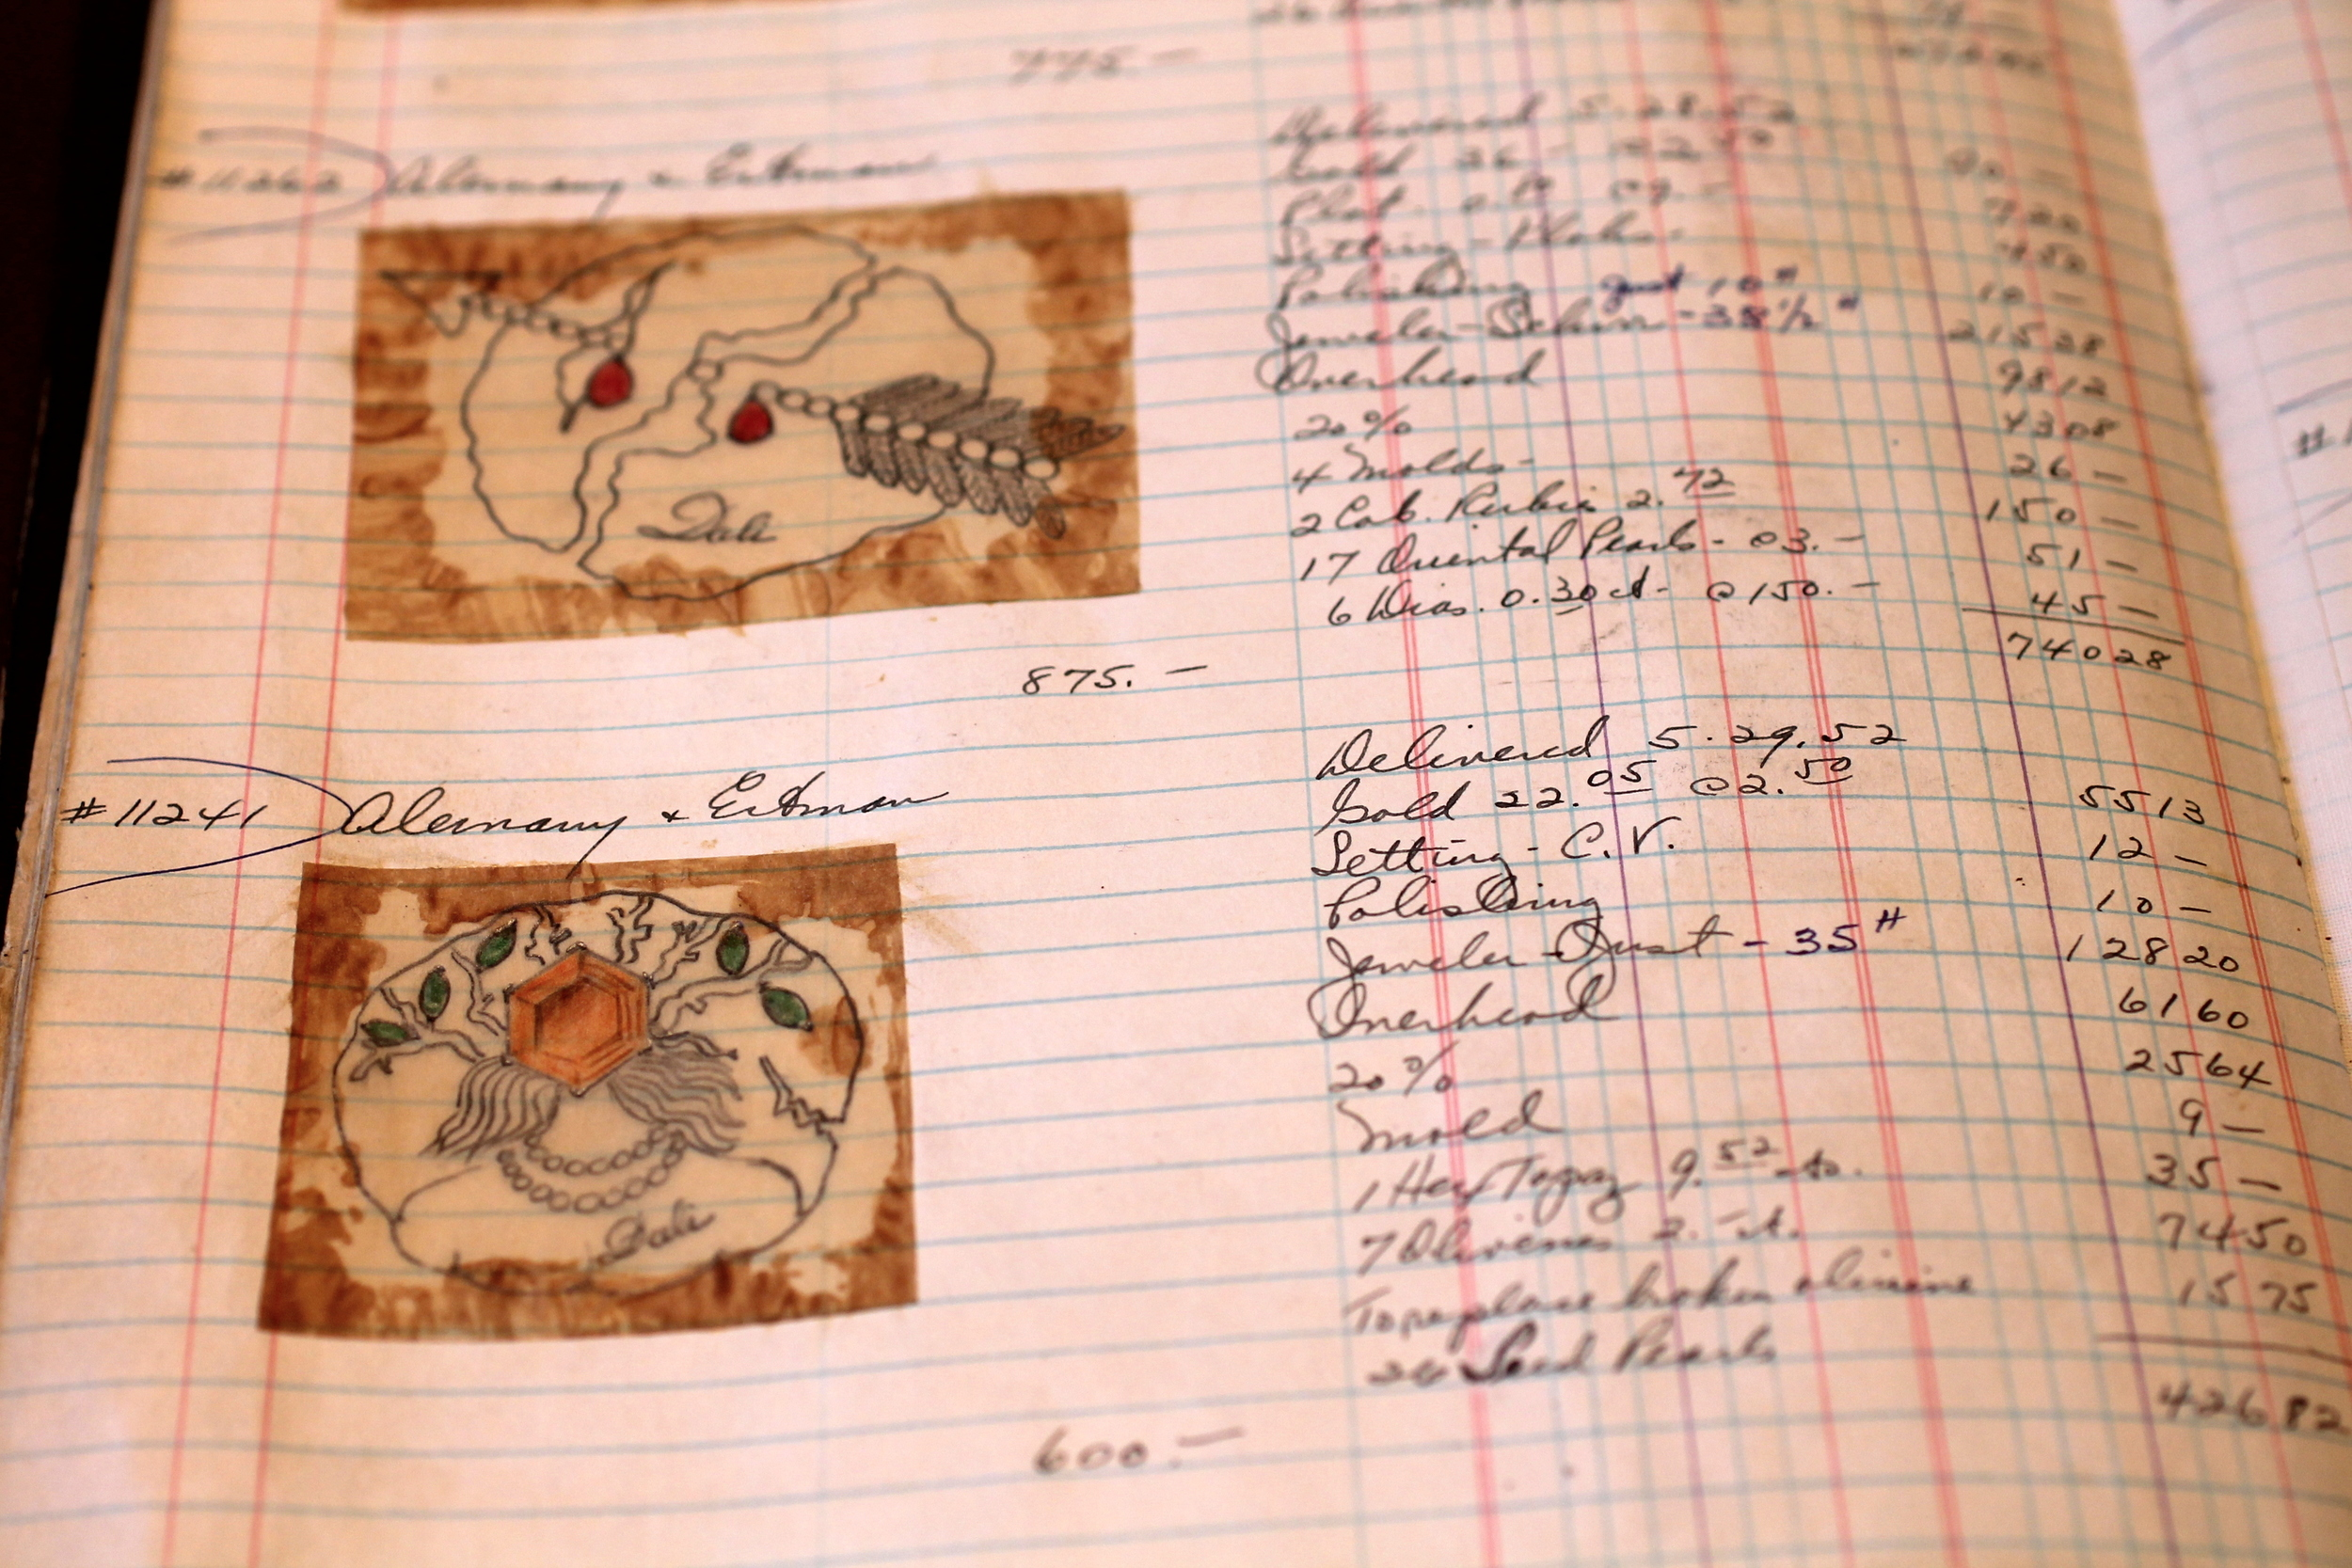 Journal entries with artist renderings of jewelry completed for  Alemany & Ertman, circa 1952